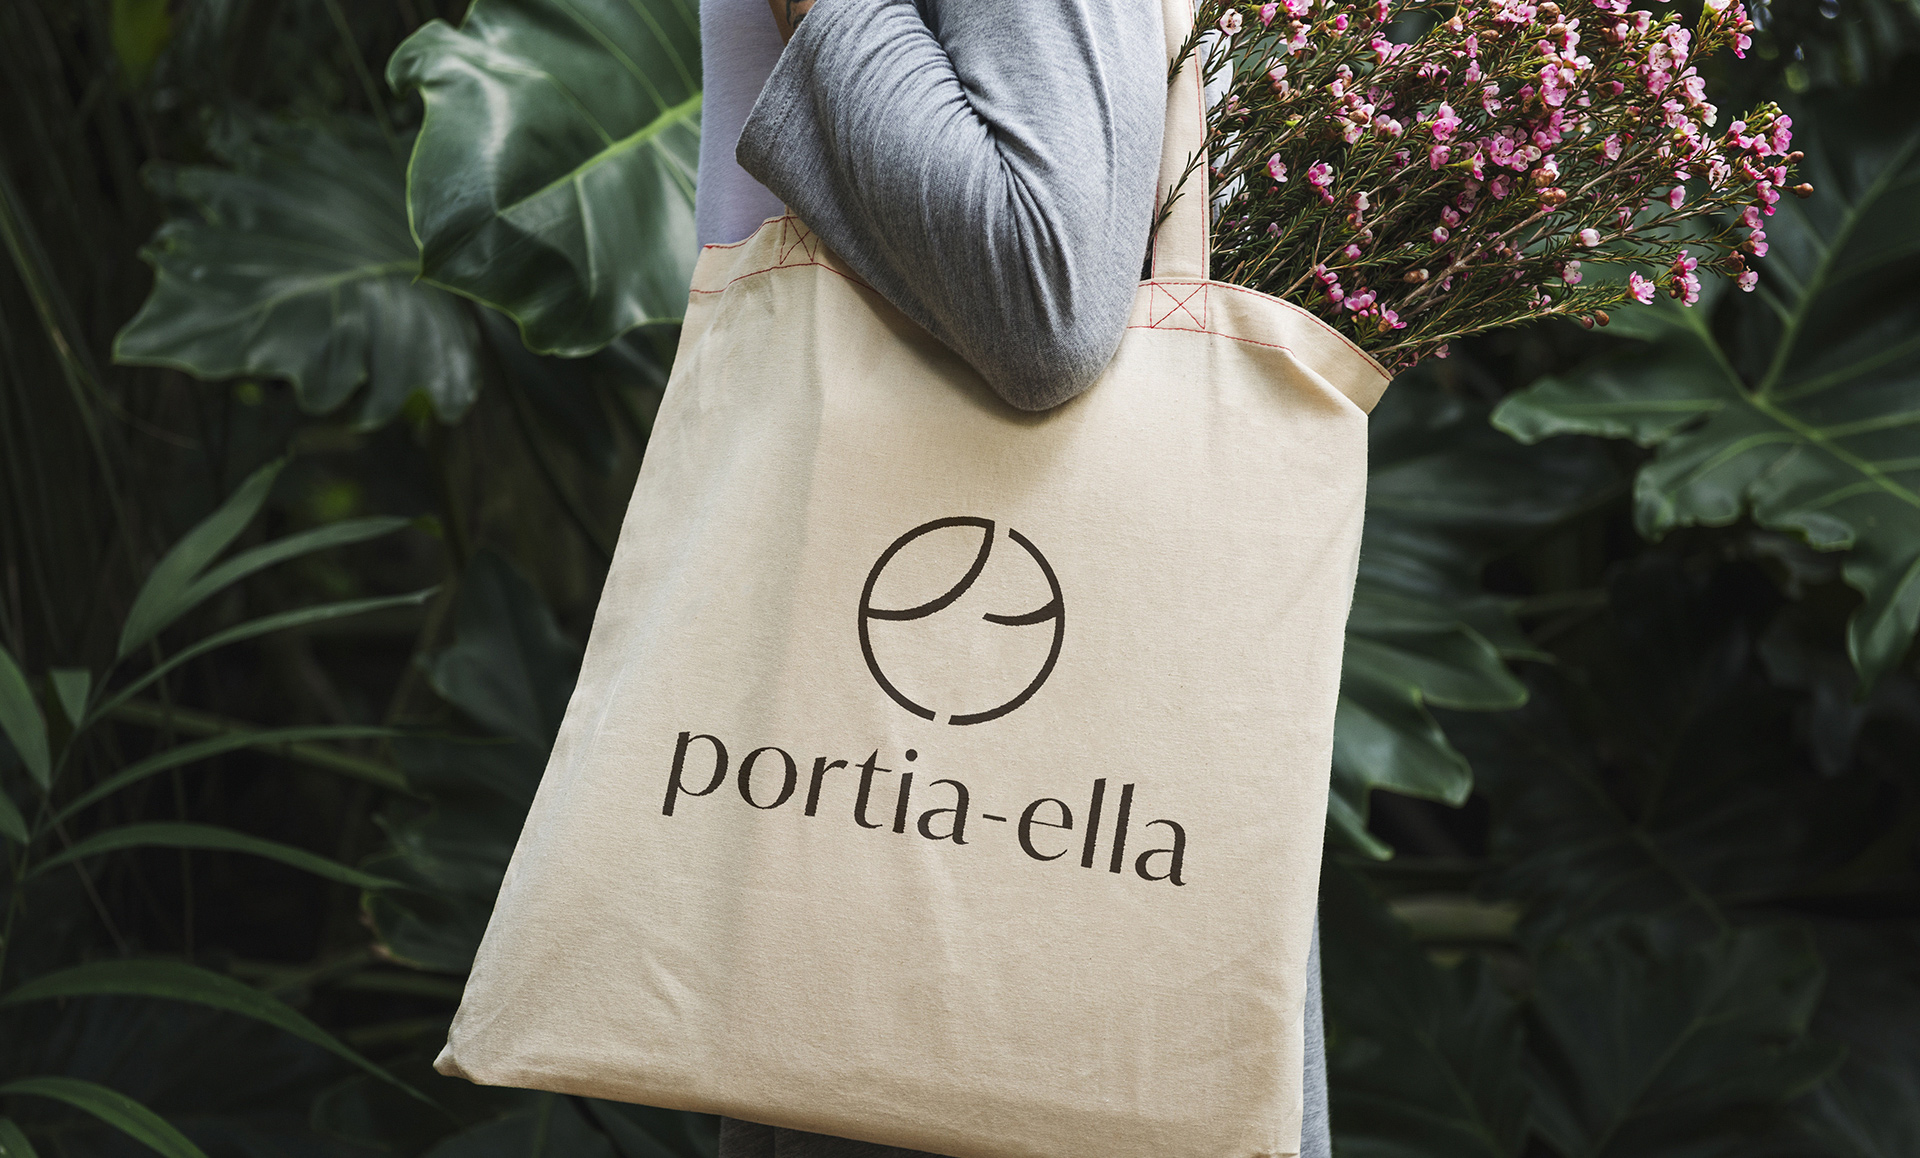 Read more on Portia Ella